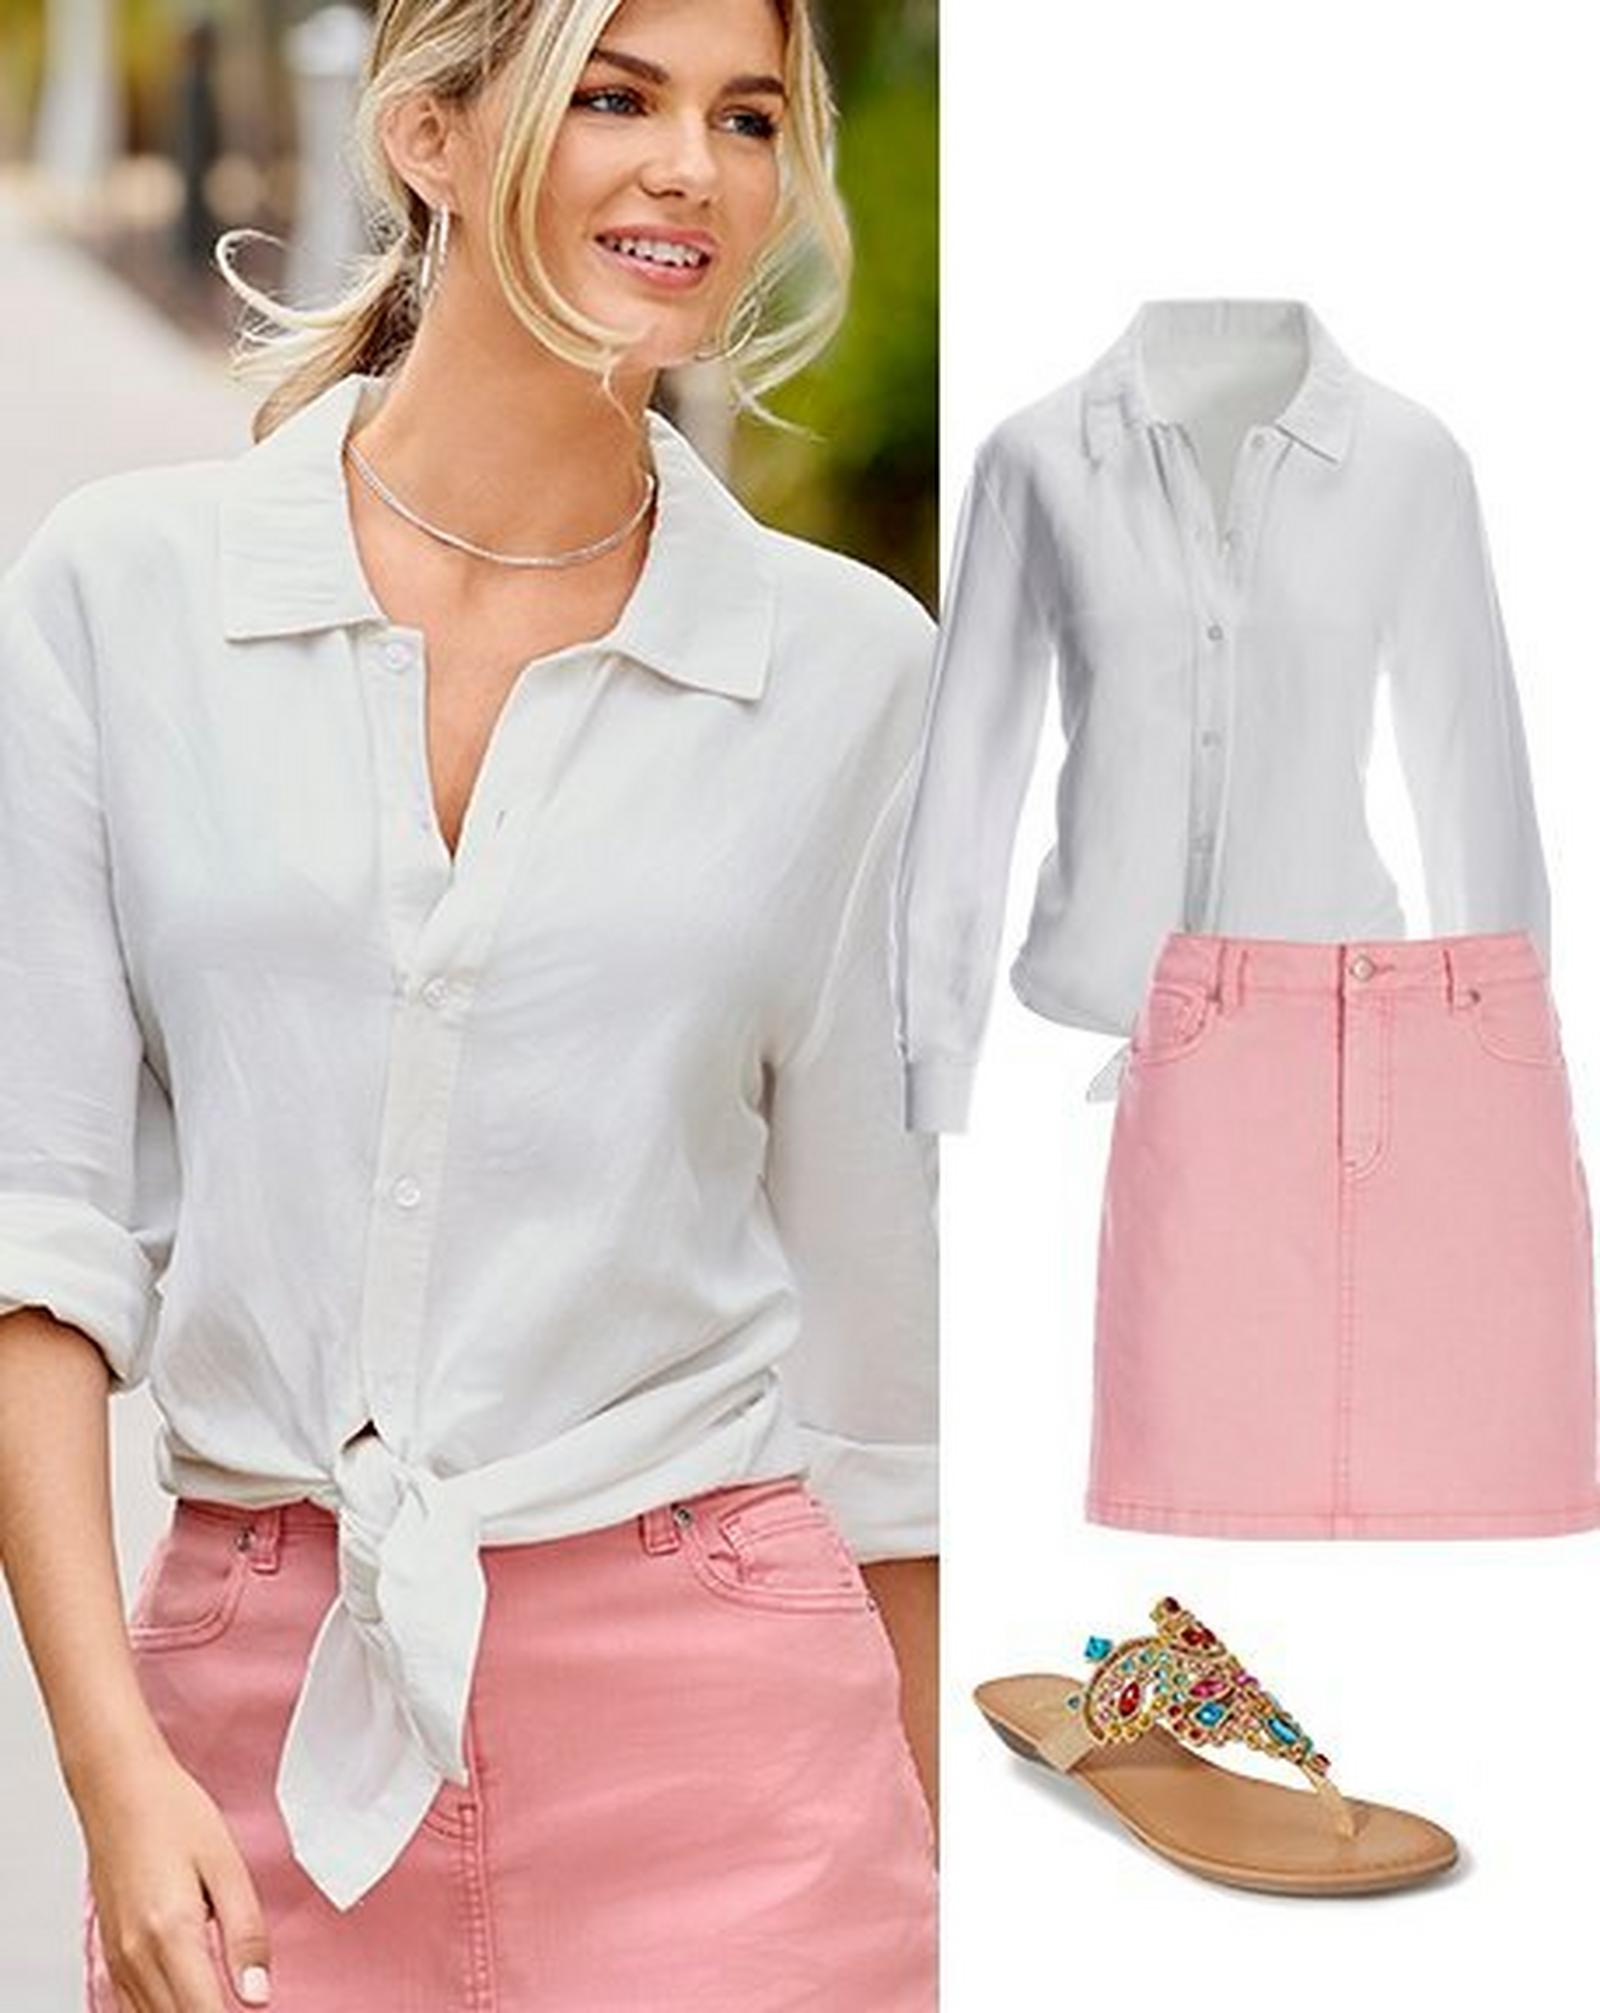 left model wearing a white button-down long-sleeve linen top that has been tied at the front and a pink denim skort. right panel: white button-down long-sleeve linen top that has been tied at the front, a pink denim skort, multicolored jeweled sandals.